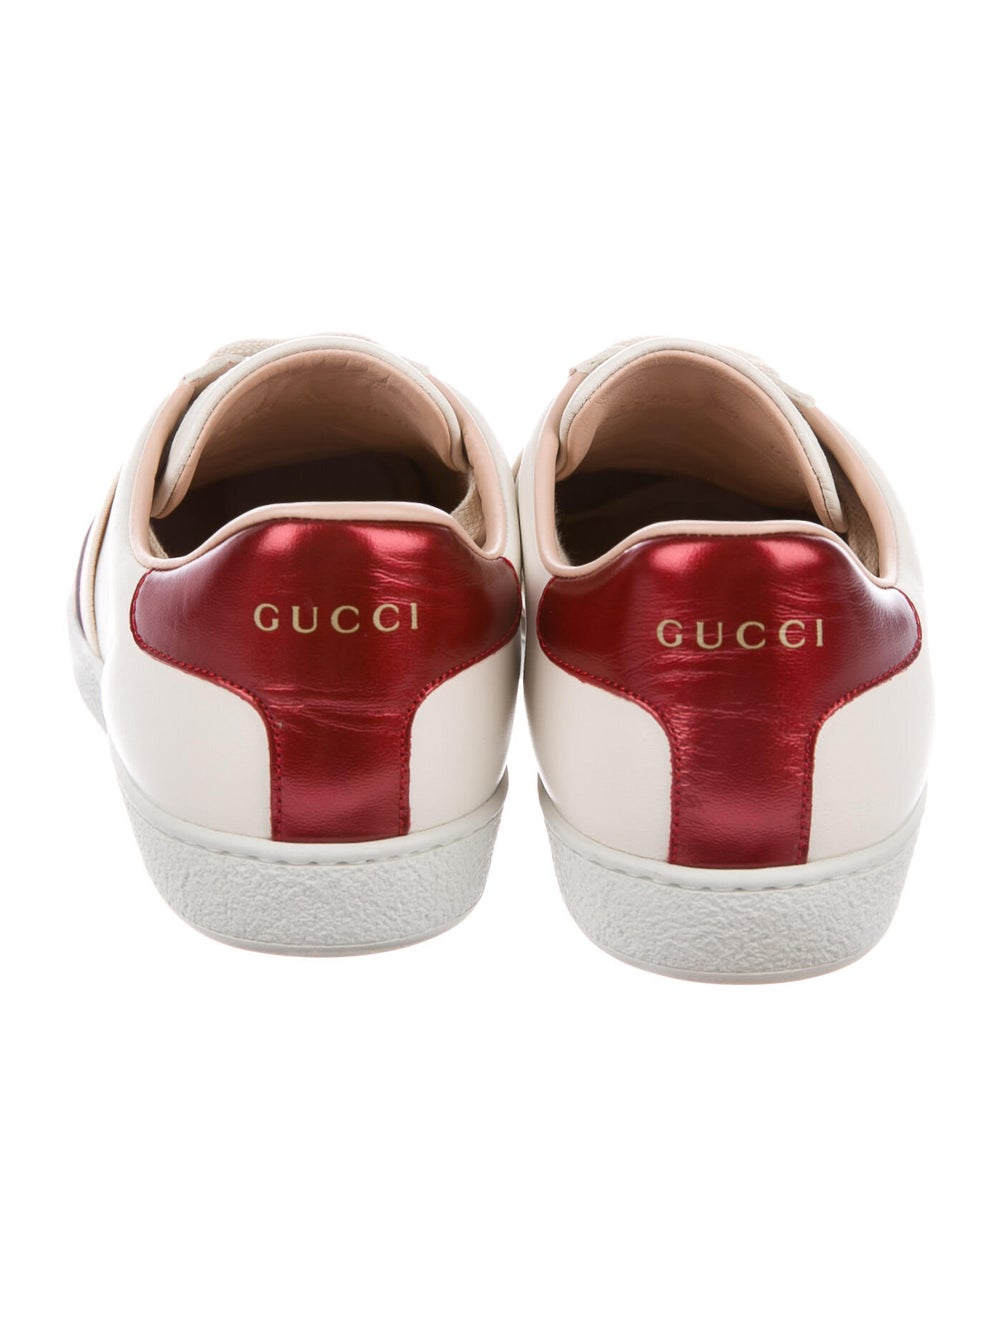 Gucci Ace Sneakers - image 4